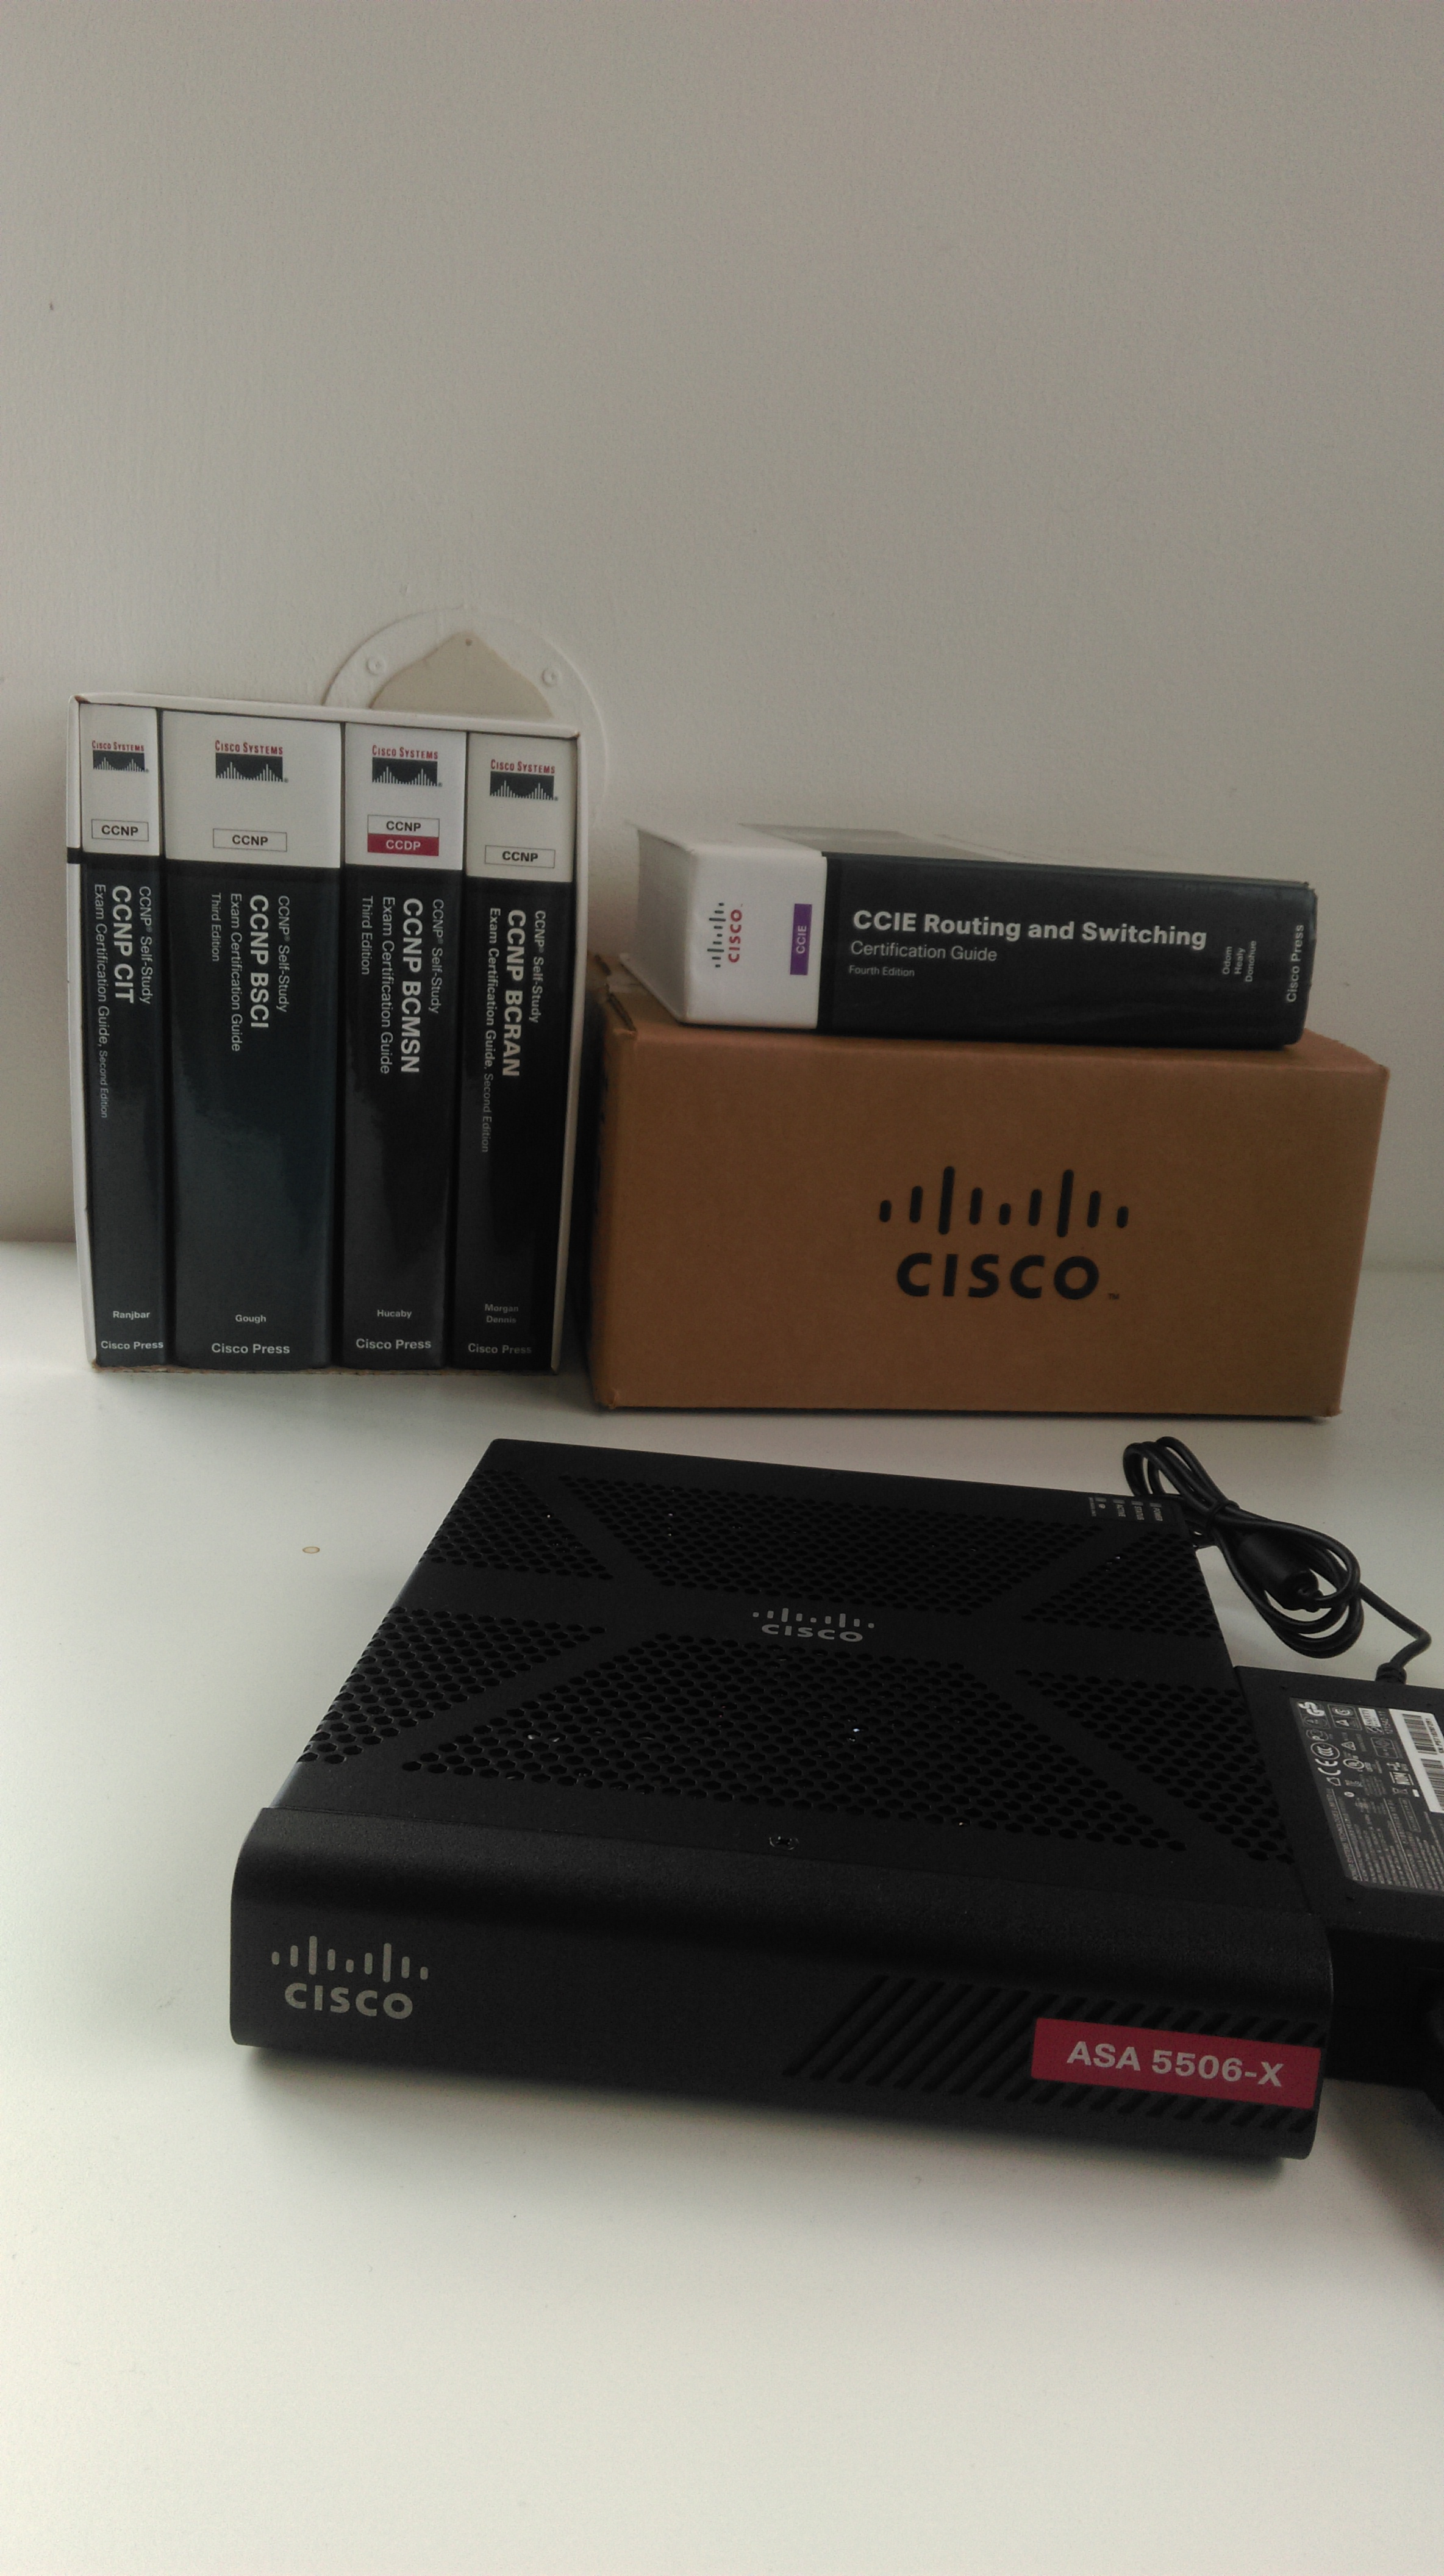 Introducing the New Cisco ASA 5506-X with FirePOWER Services